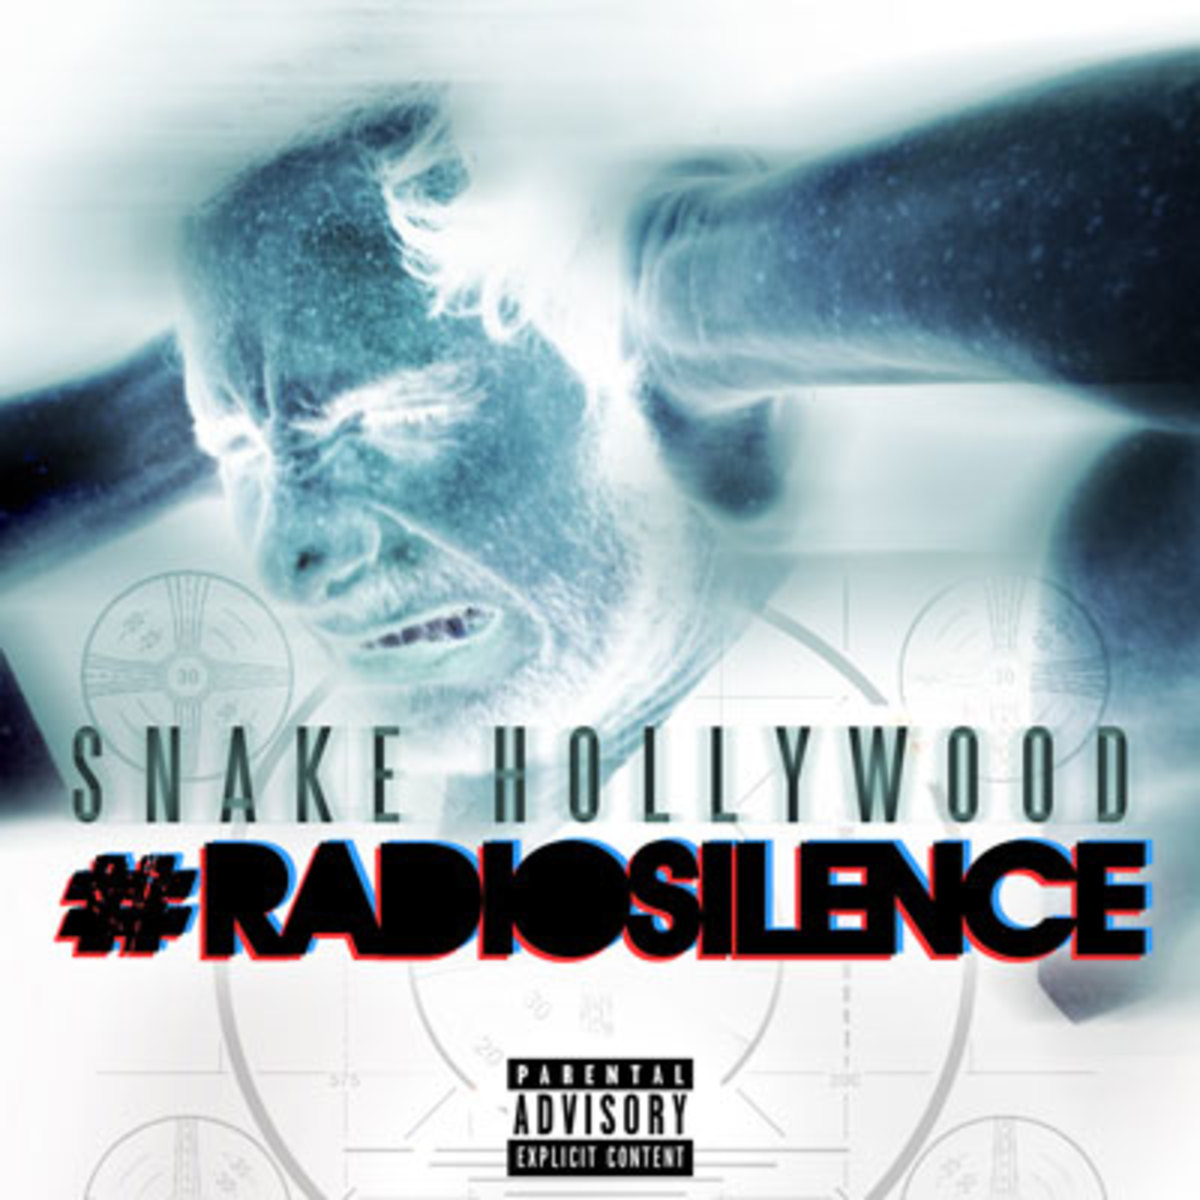 snakehollywood-radio.jpg